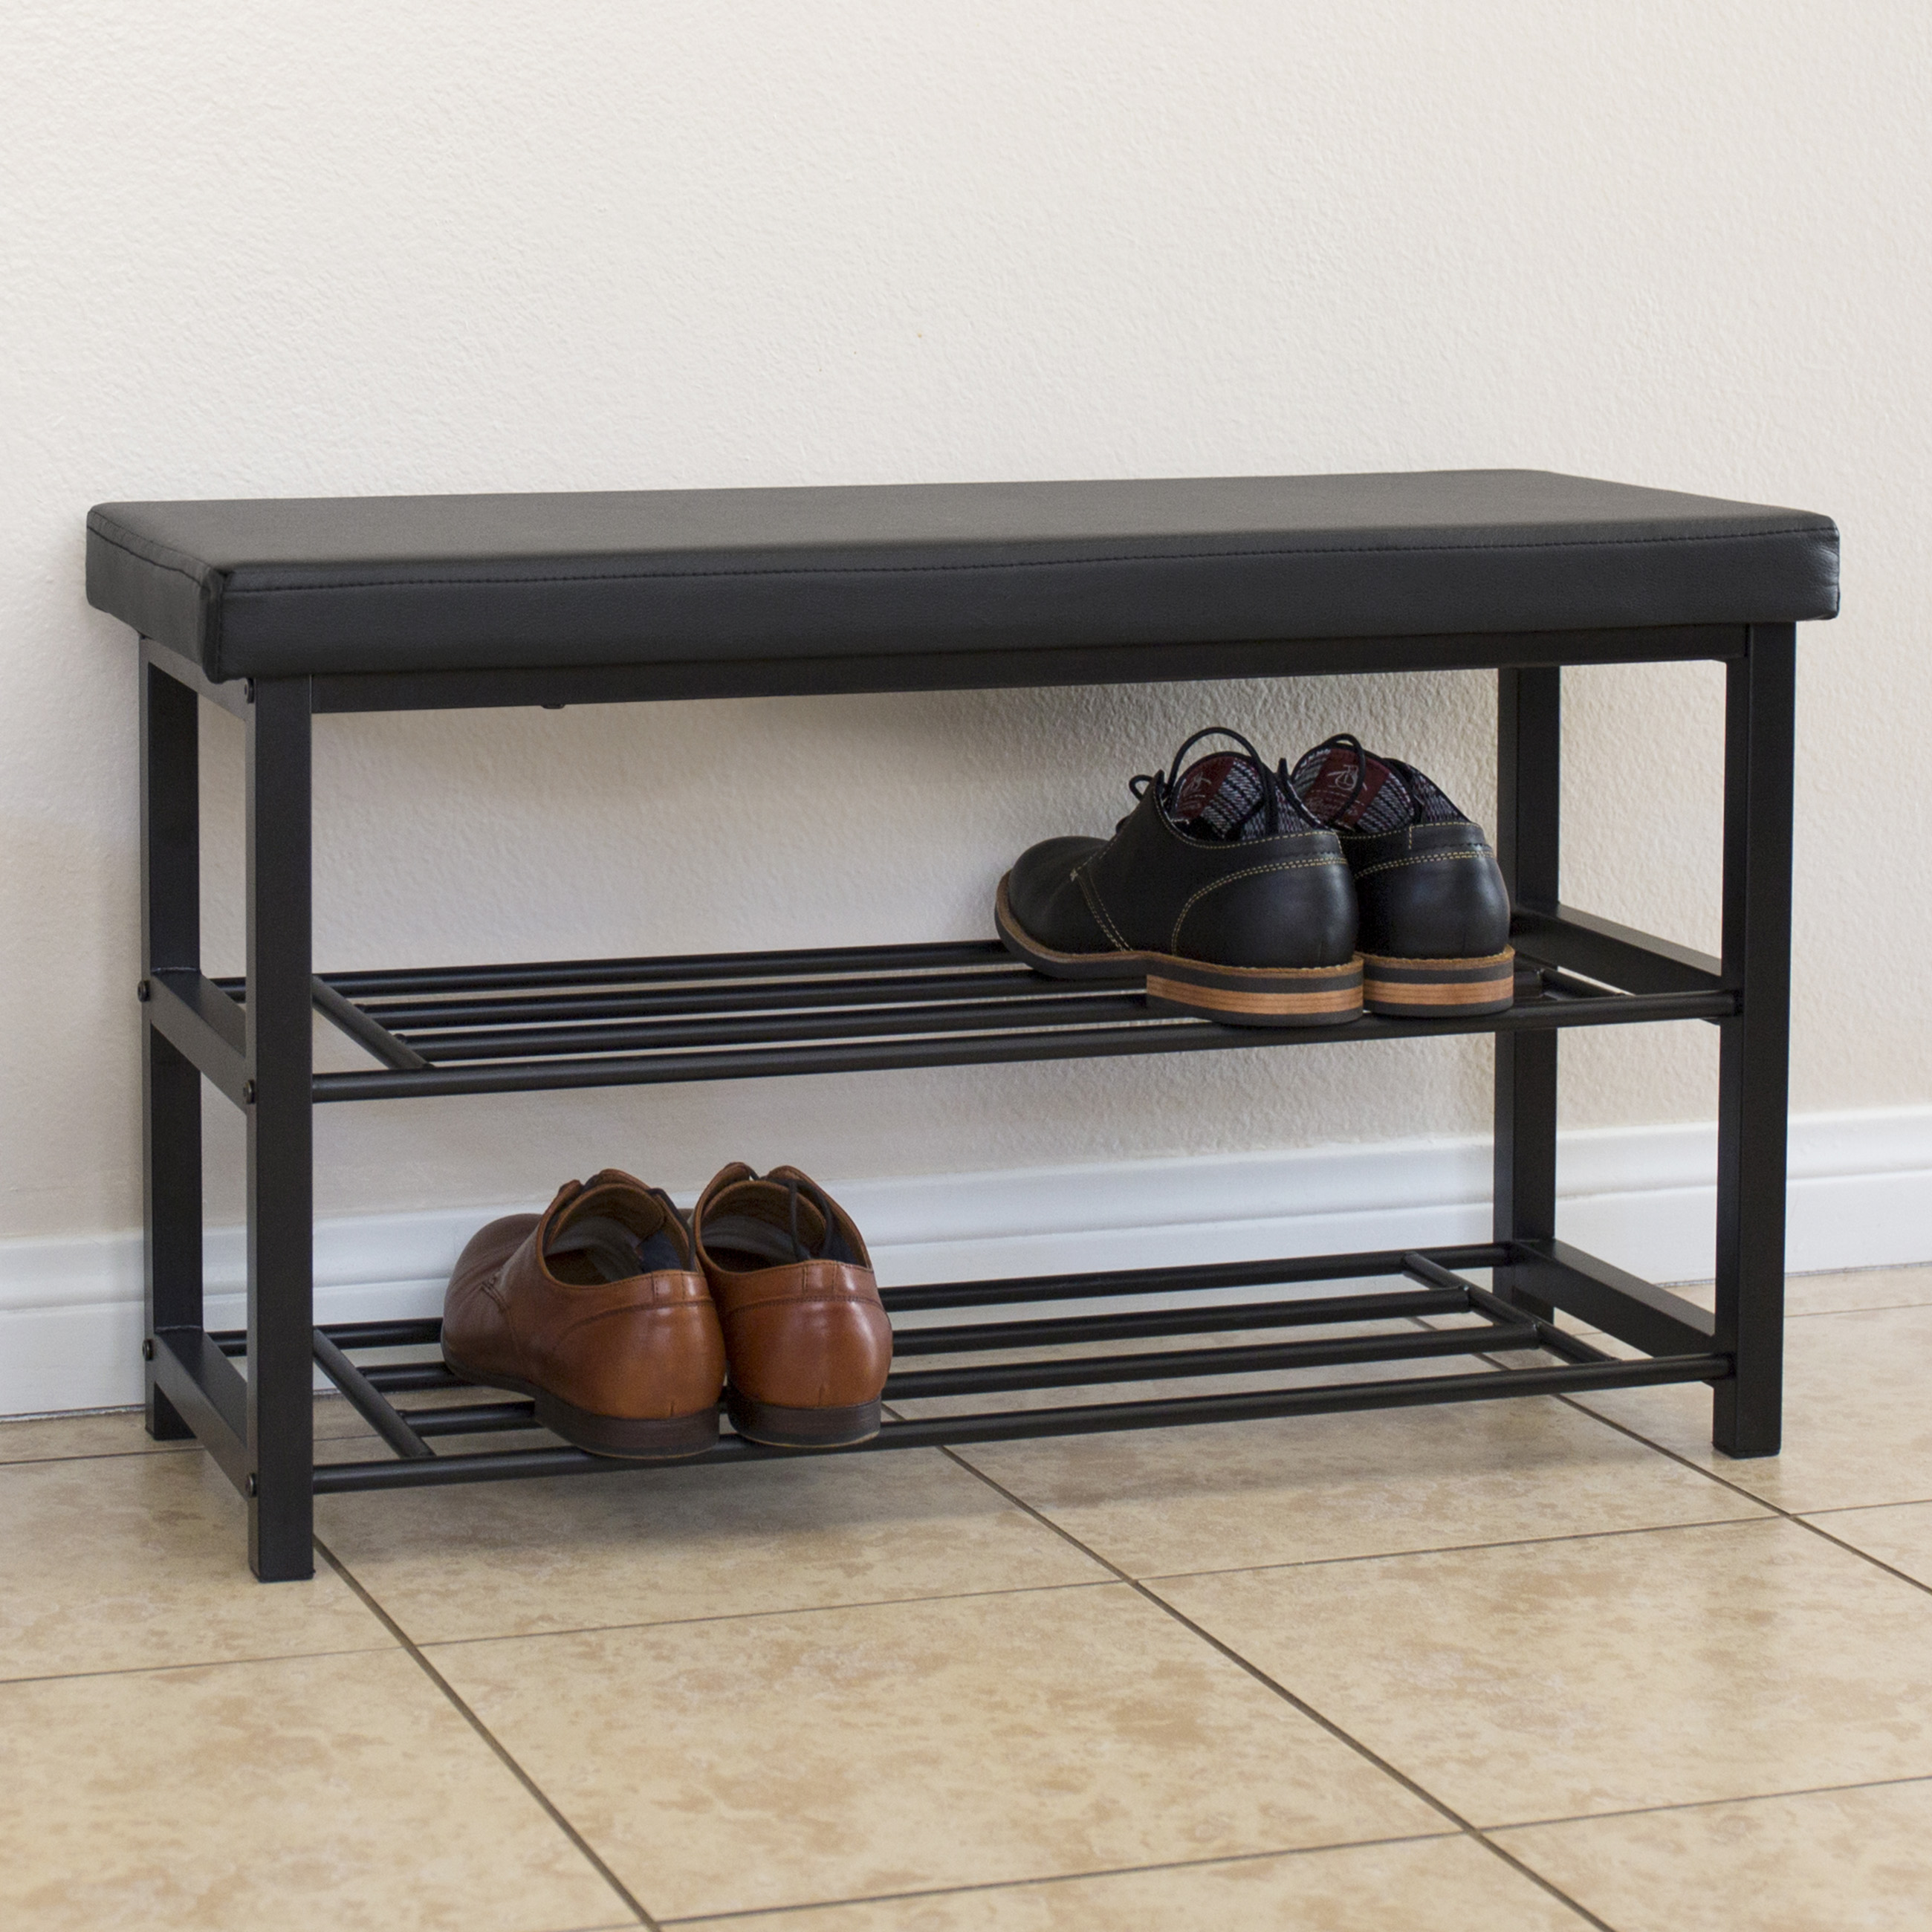 Best Choice Products 2-Tier Metal Storage Bench Shoe Rack Organize W  Leather Top- Black by Best Choice Products